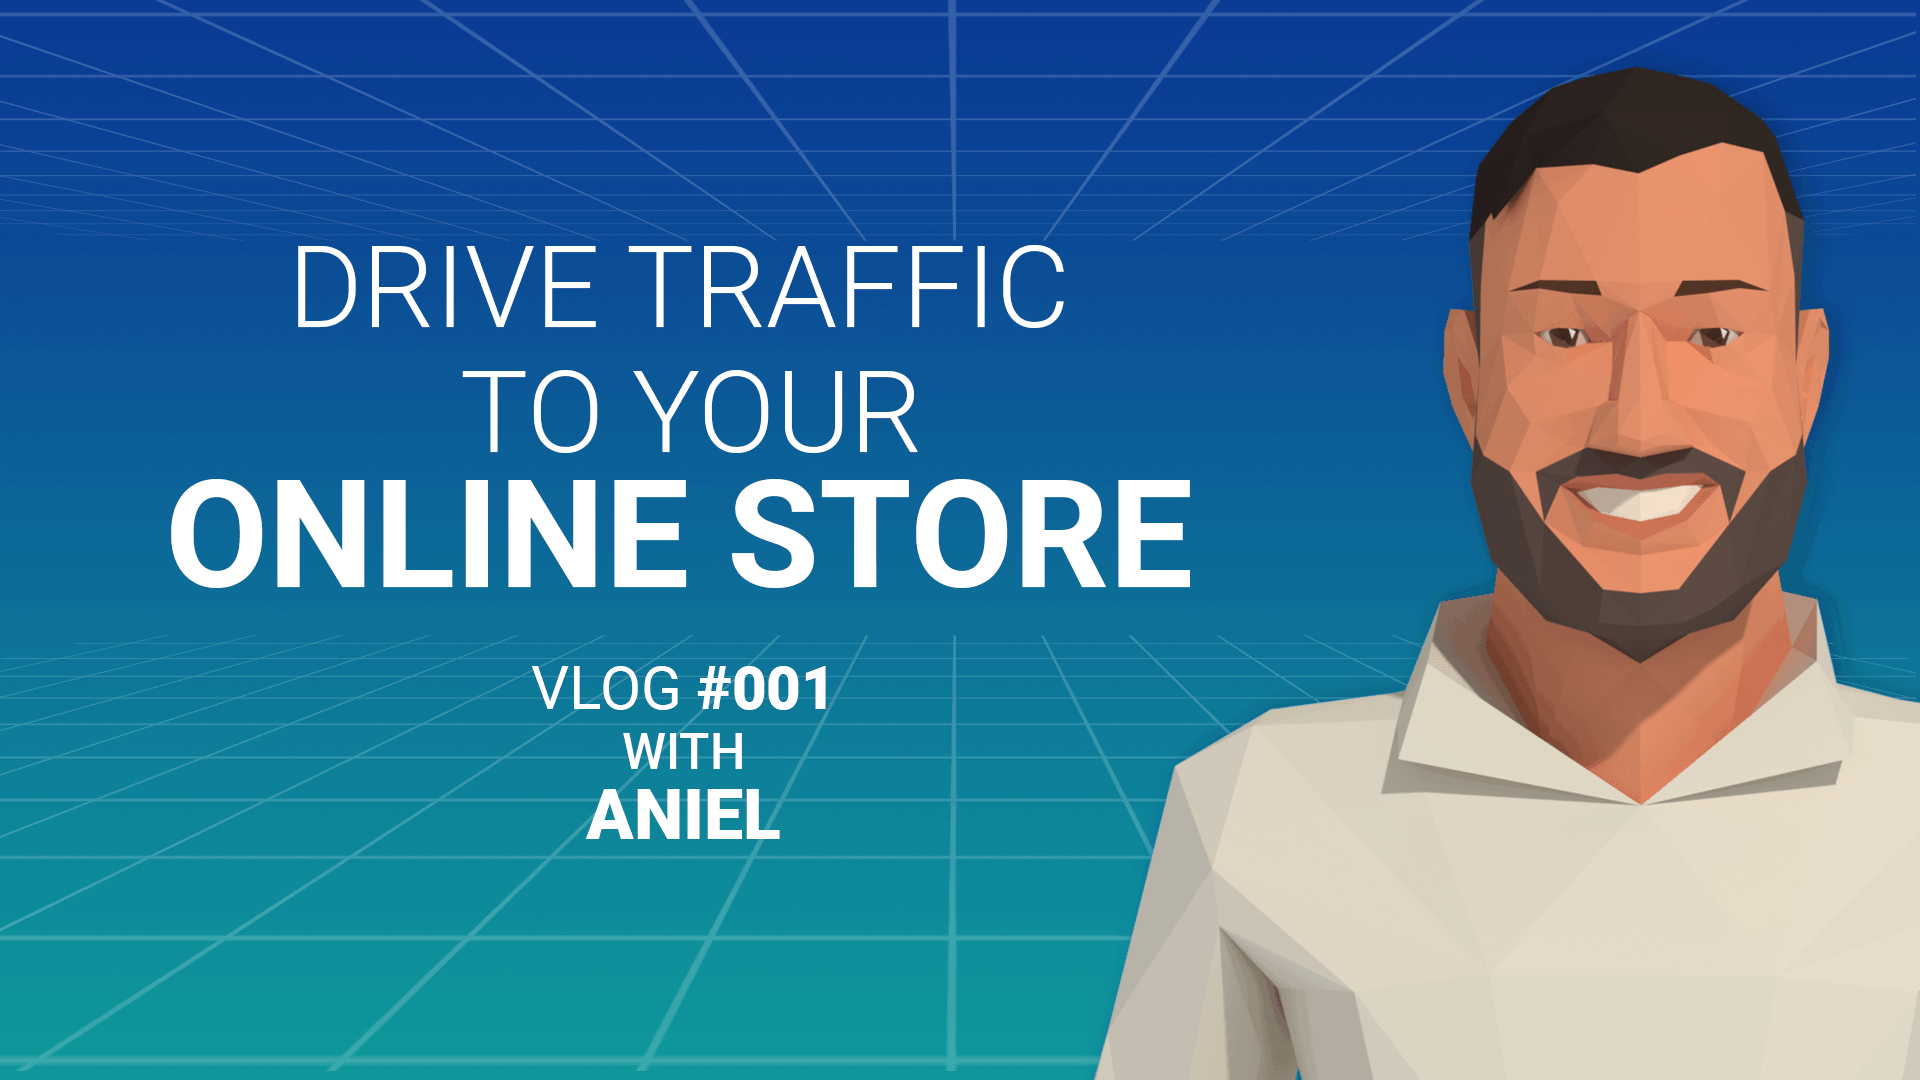 3 Tips To Drive Traffic To Your Online Store